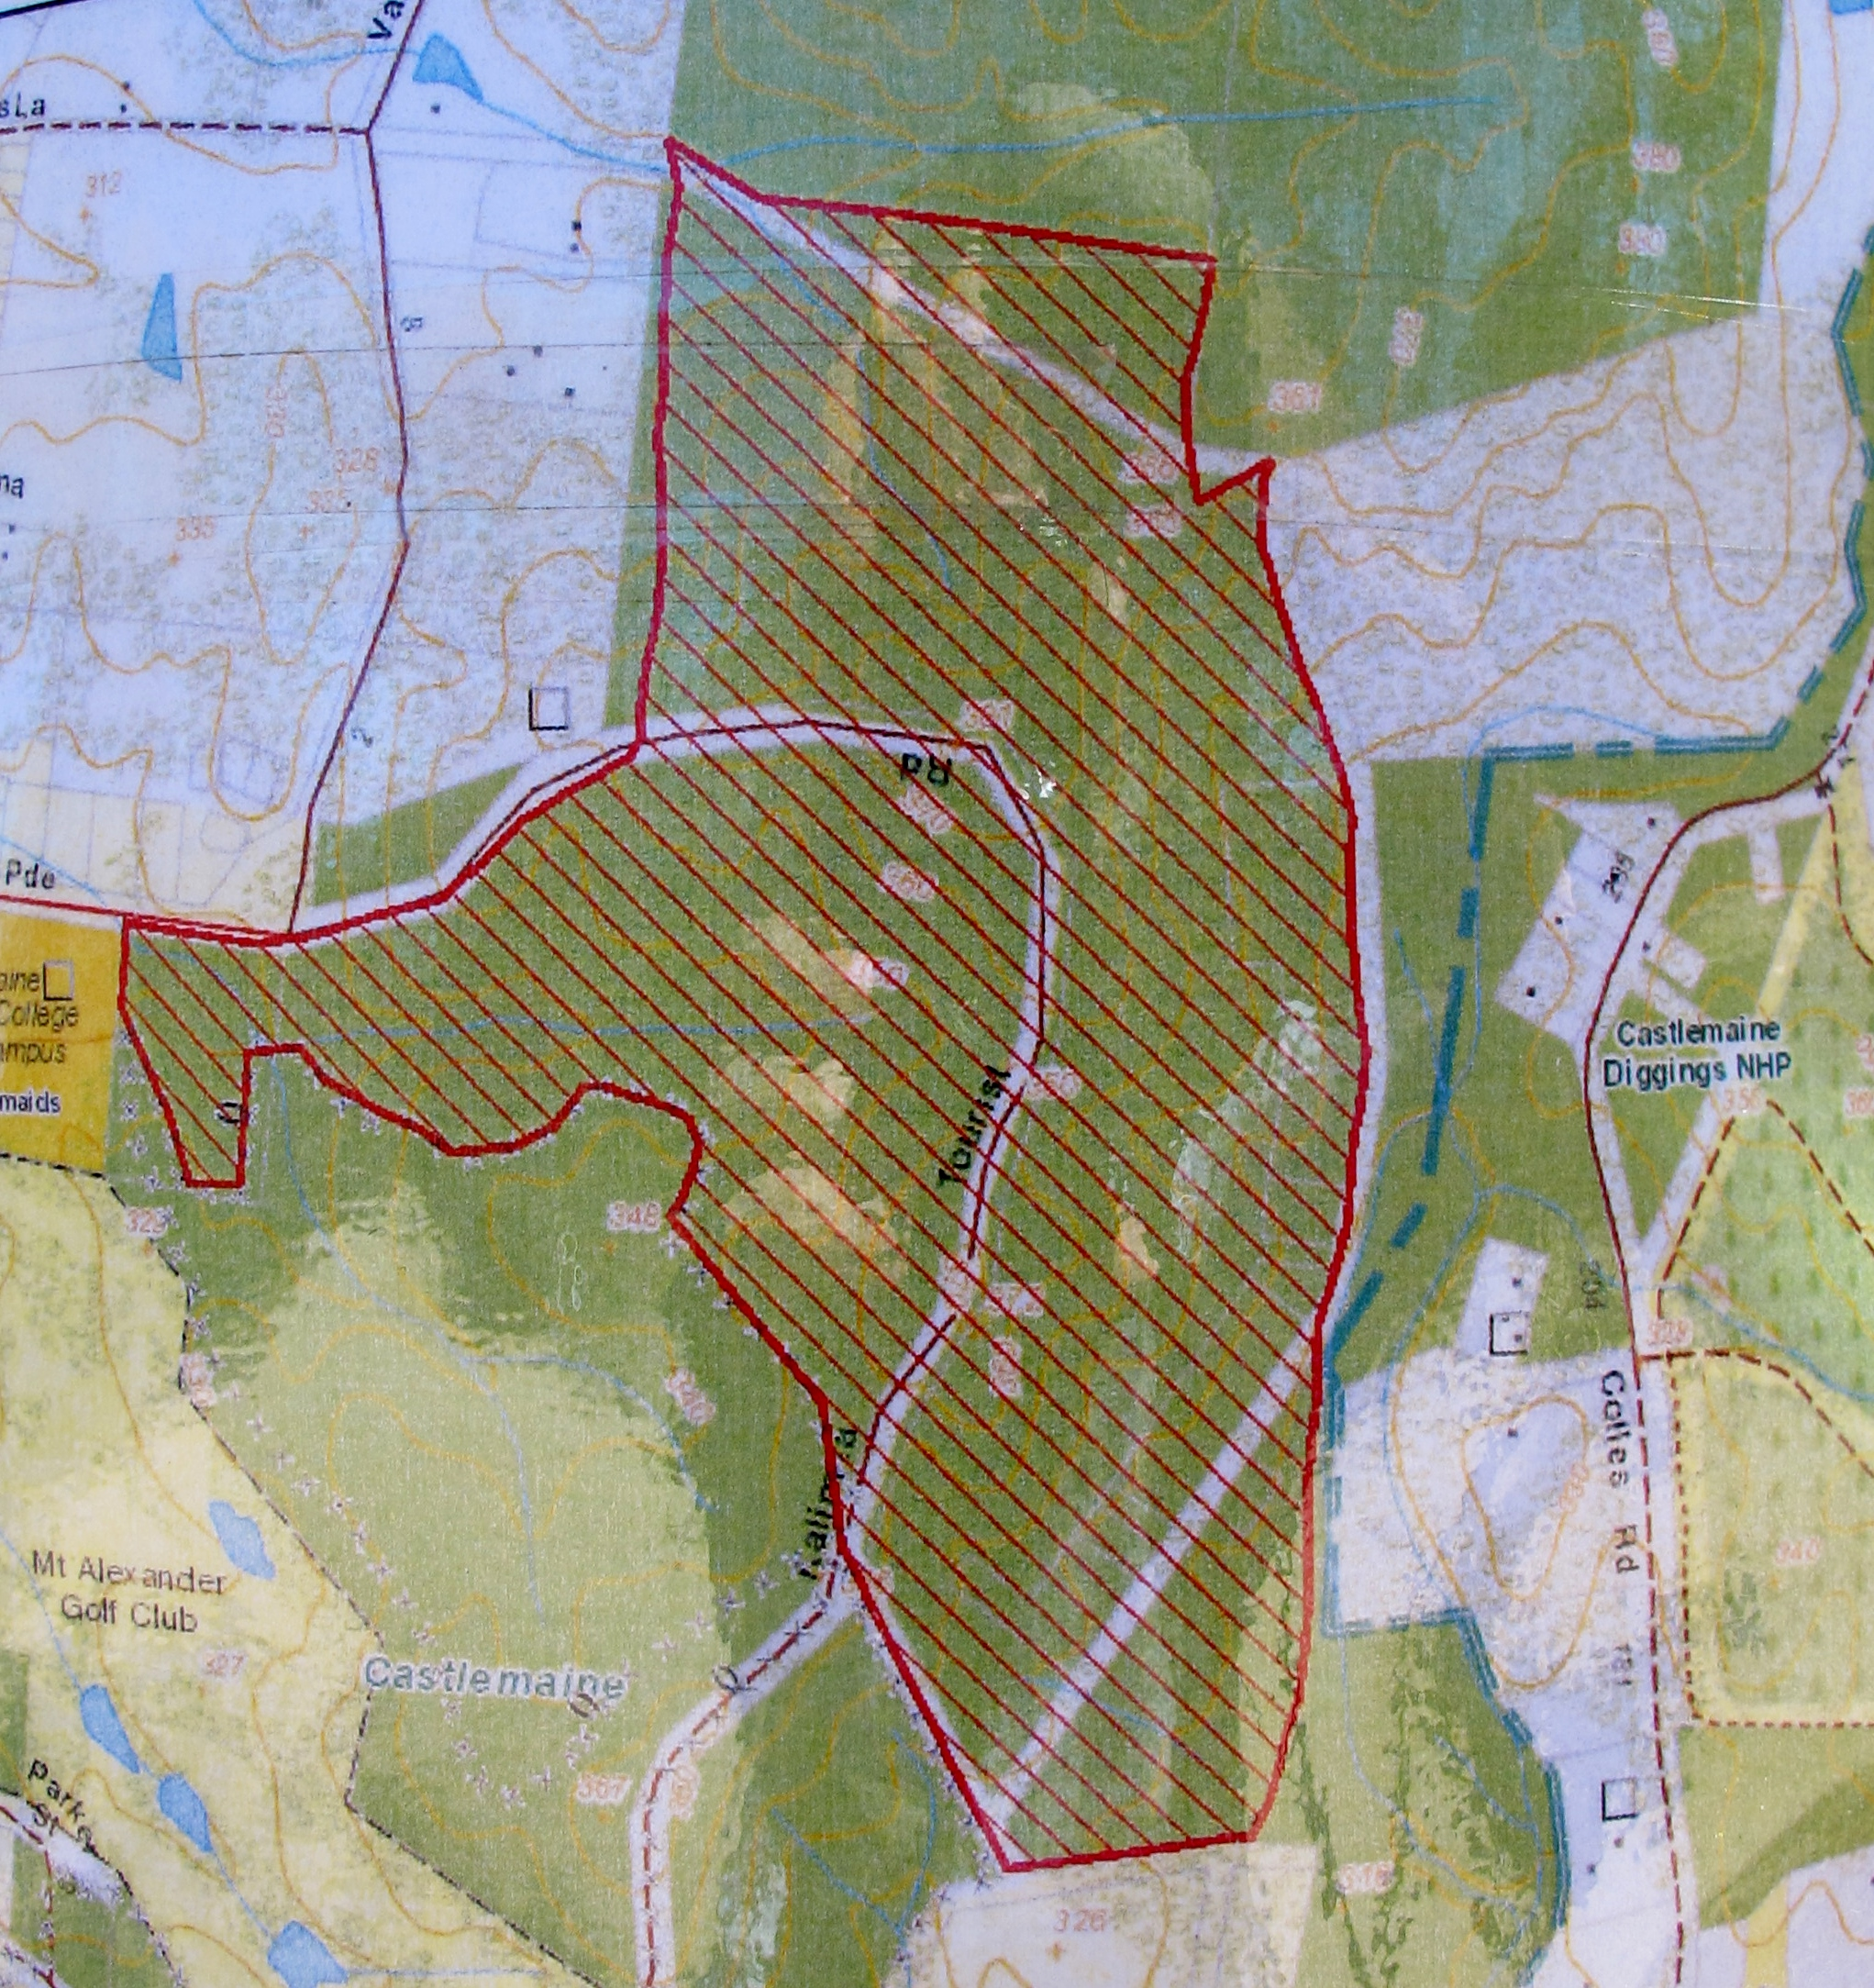 Proposed burn area. It's centred on the Tourist road, and includes the area burned in 2009